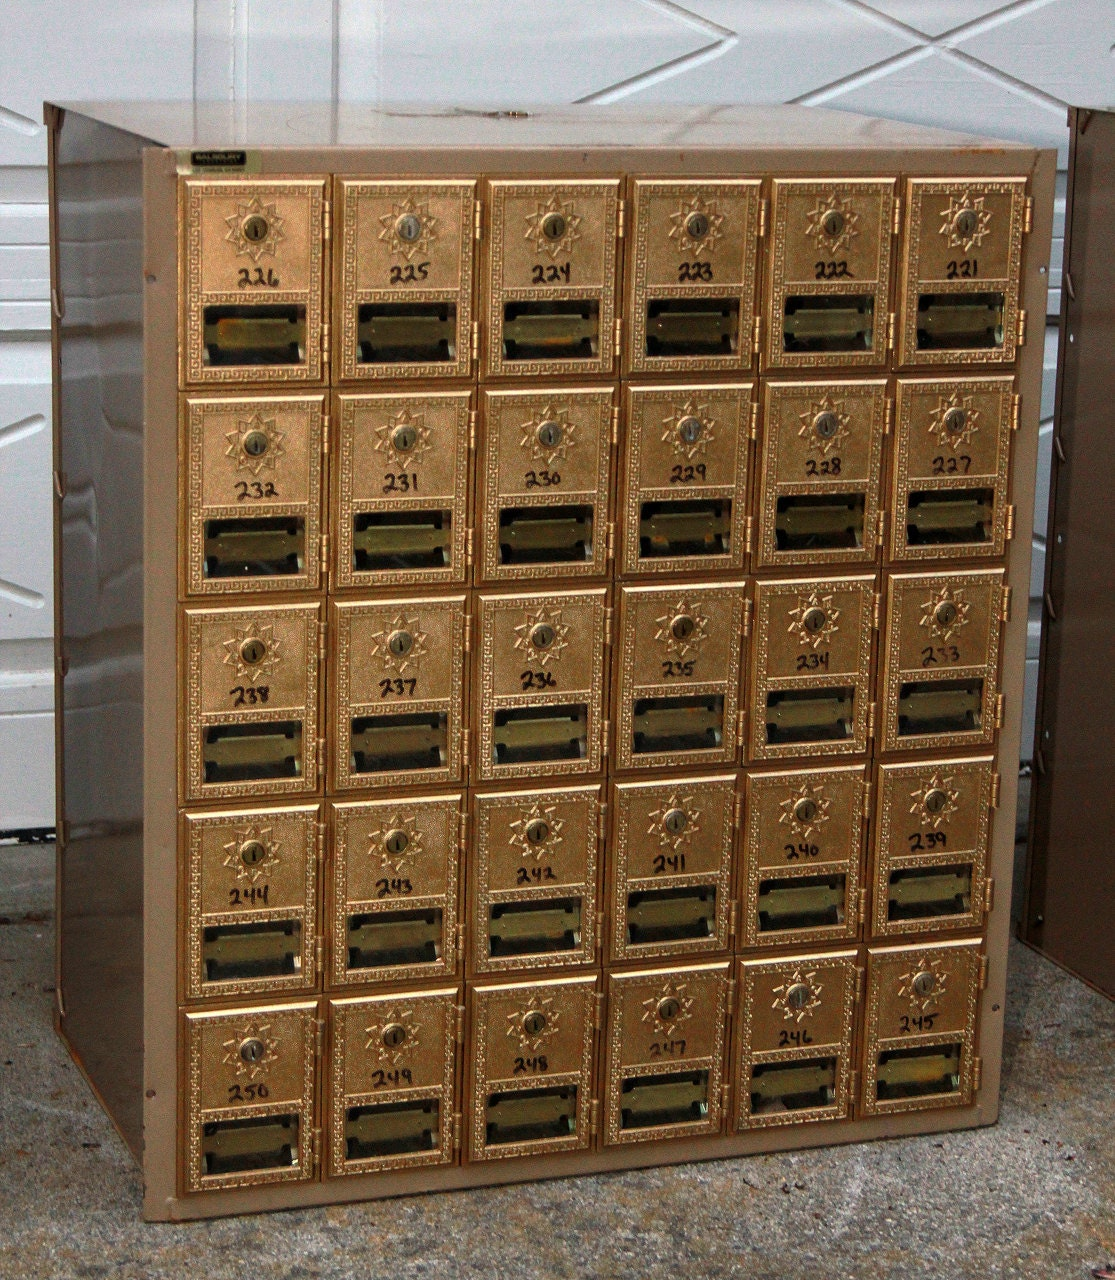 Vintage mailboxes bank of 30 industrial decor brass and - Post office bank statements ...